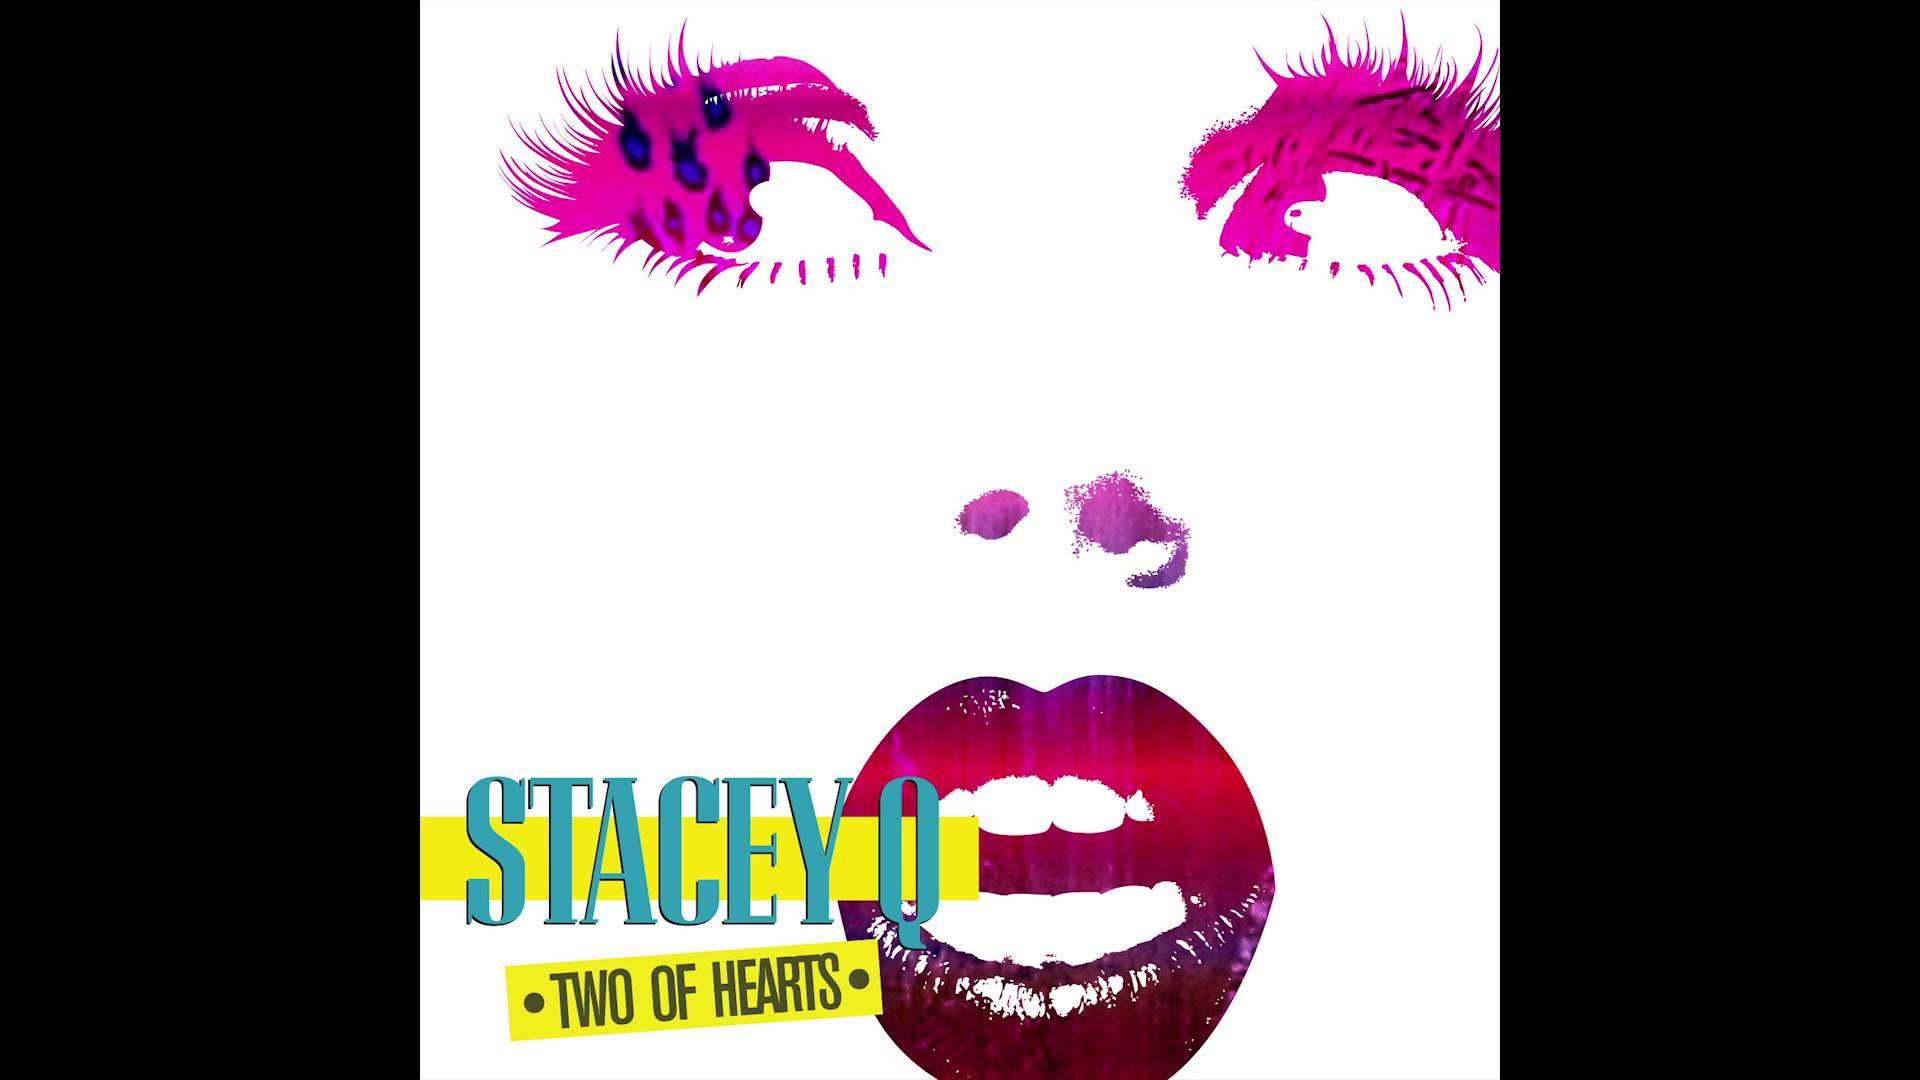 Stacey Q. - Two Of Hearts - YouTube